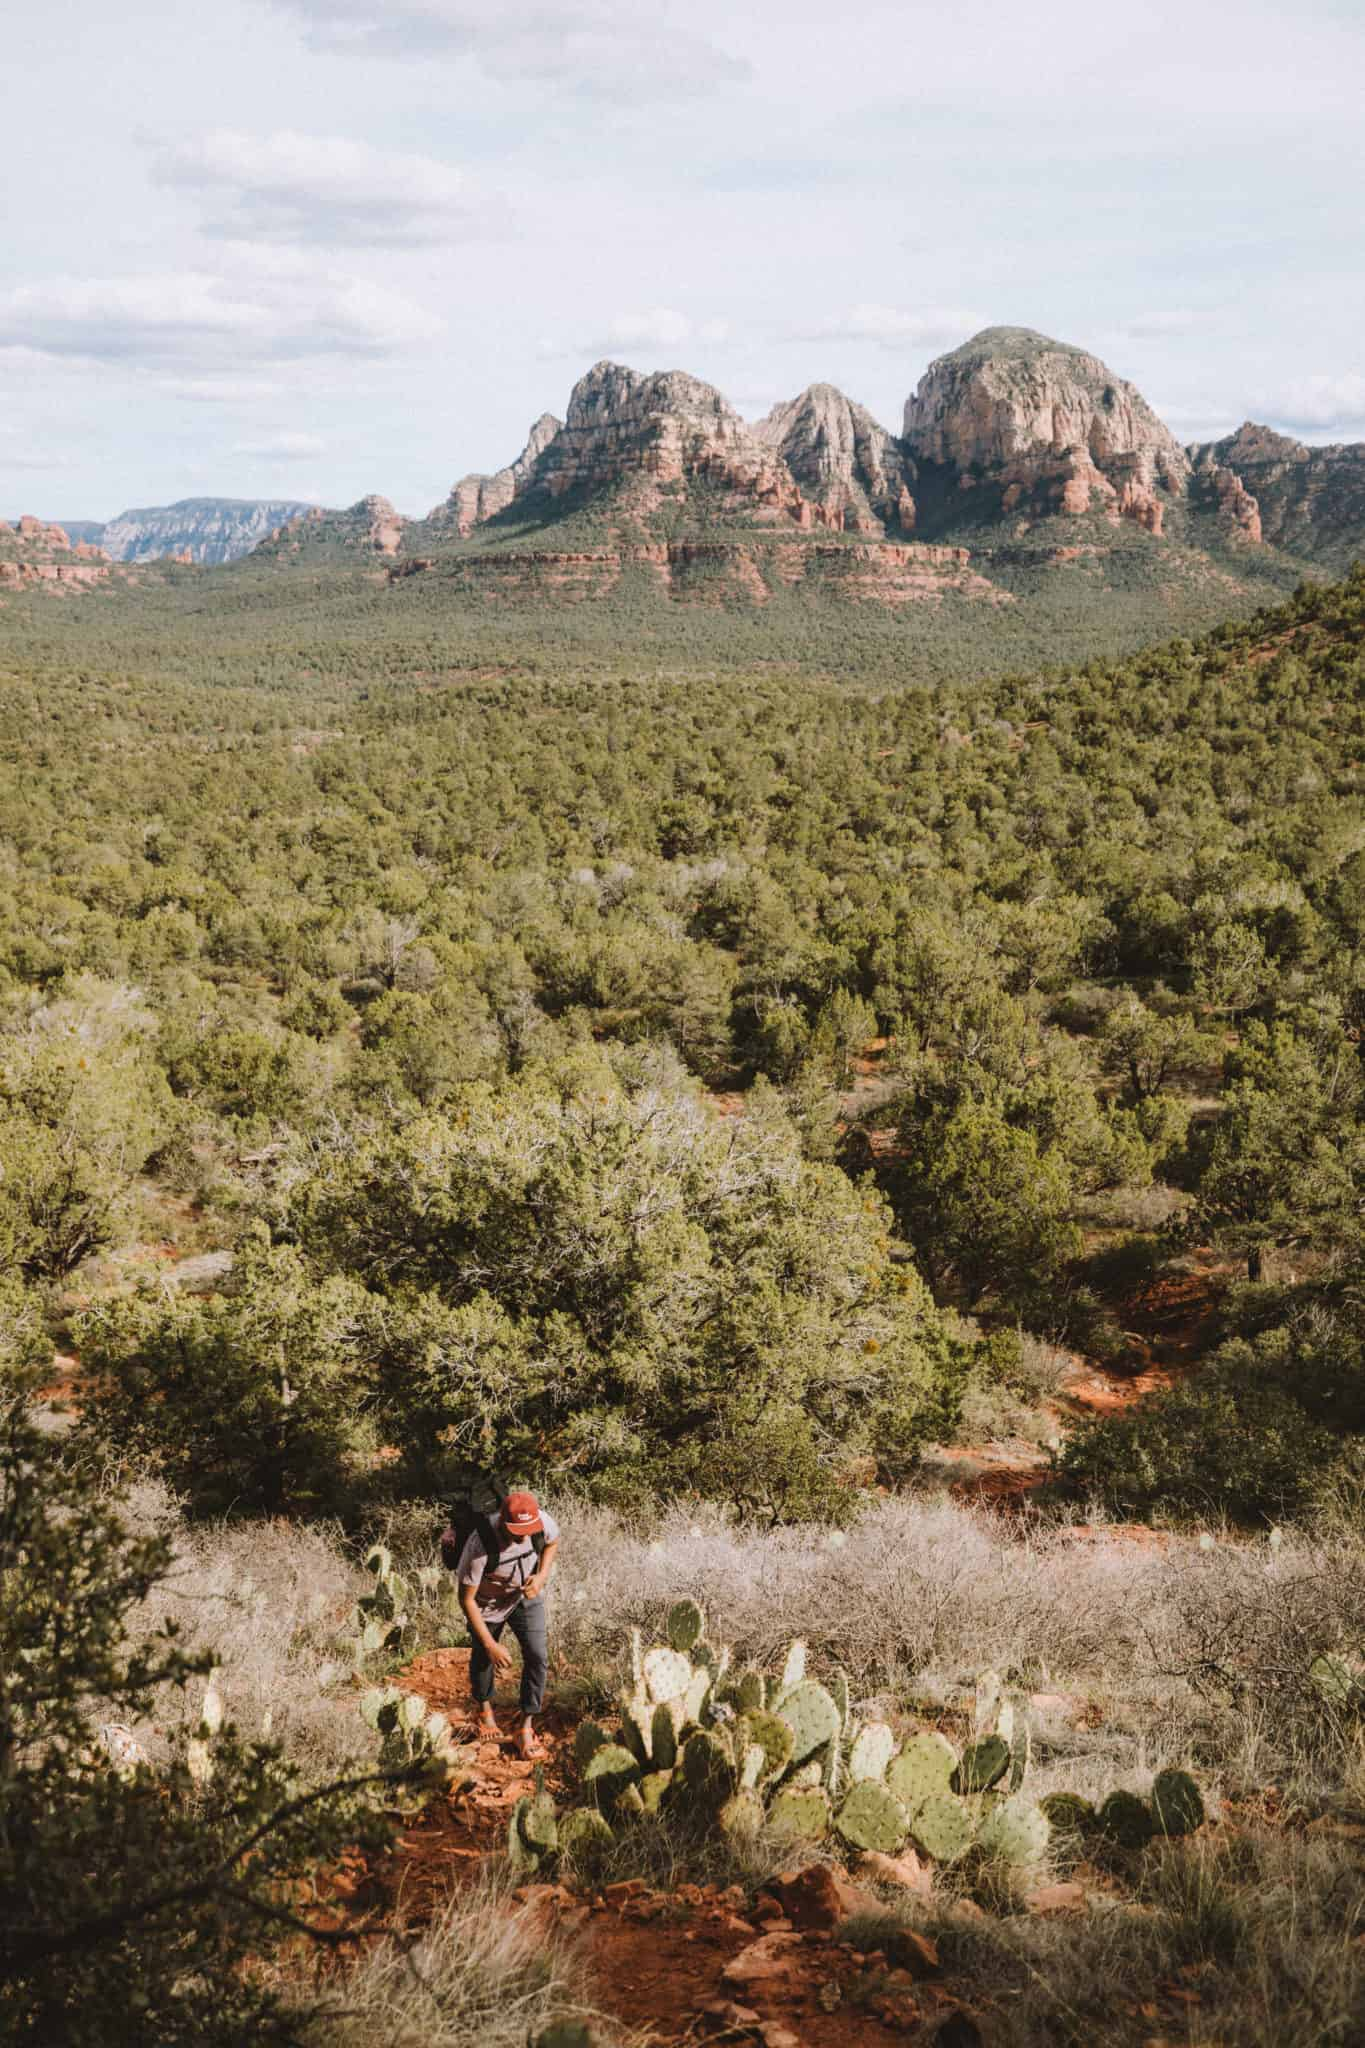 Berty on the steep trail to the birthing cave in sedona